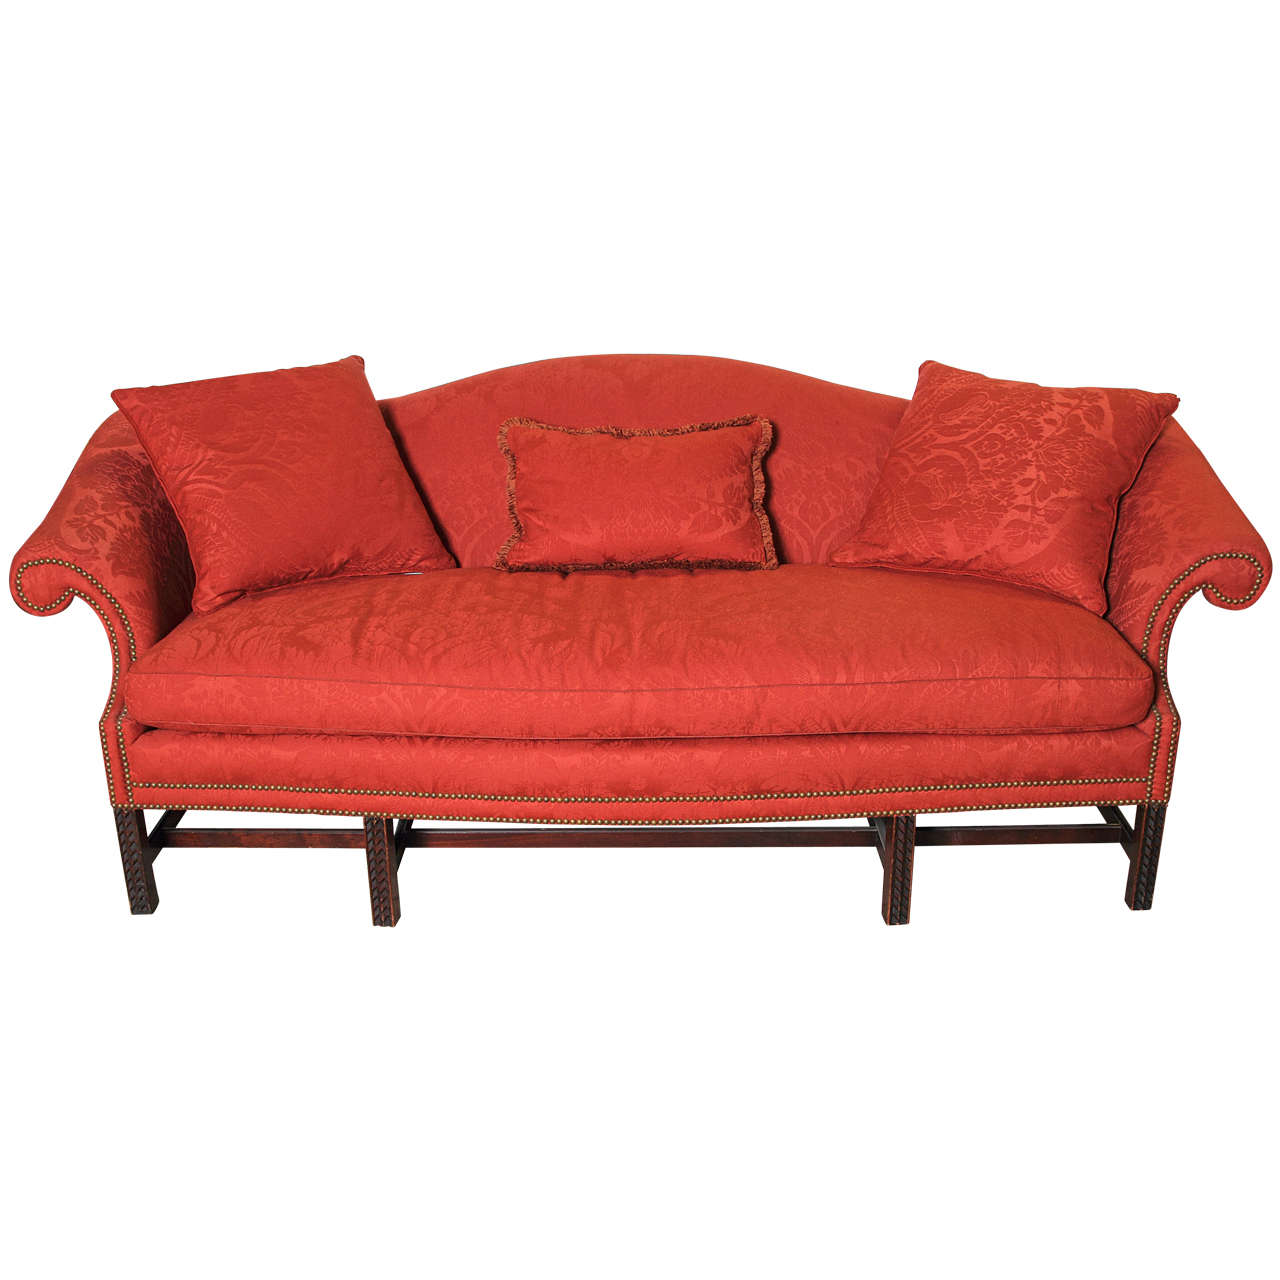 English chippendale style camel back sofa for sale at 1stdibs for Sofa vs couch english